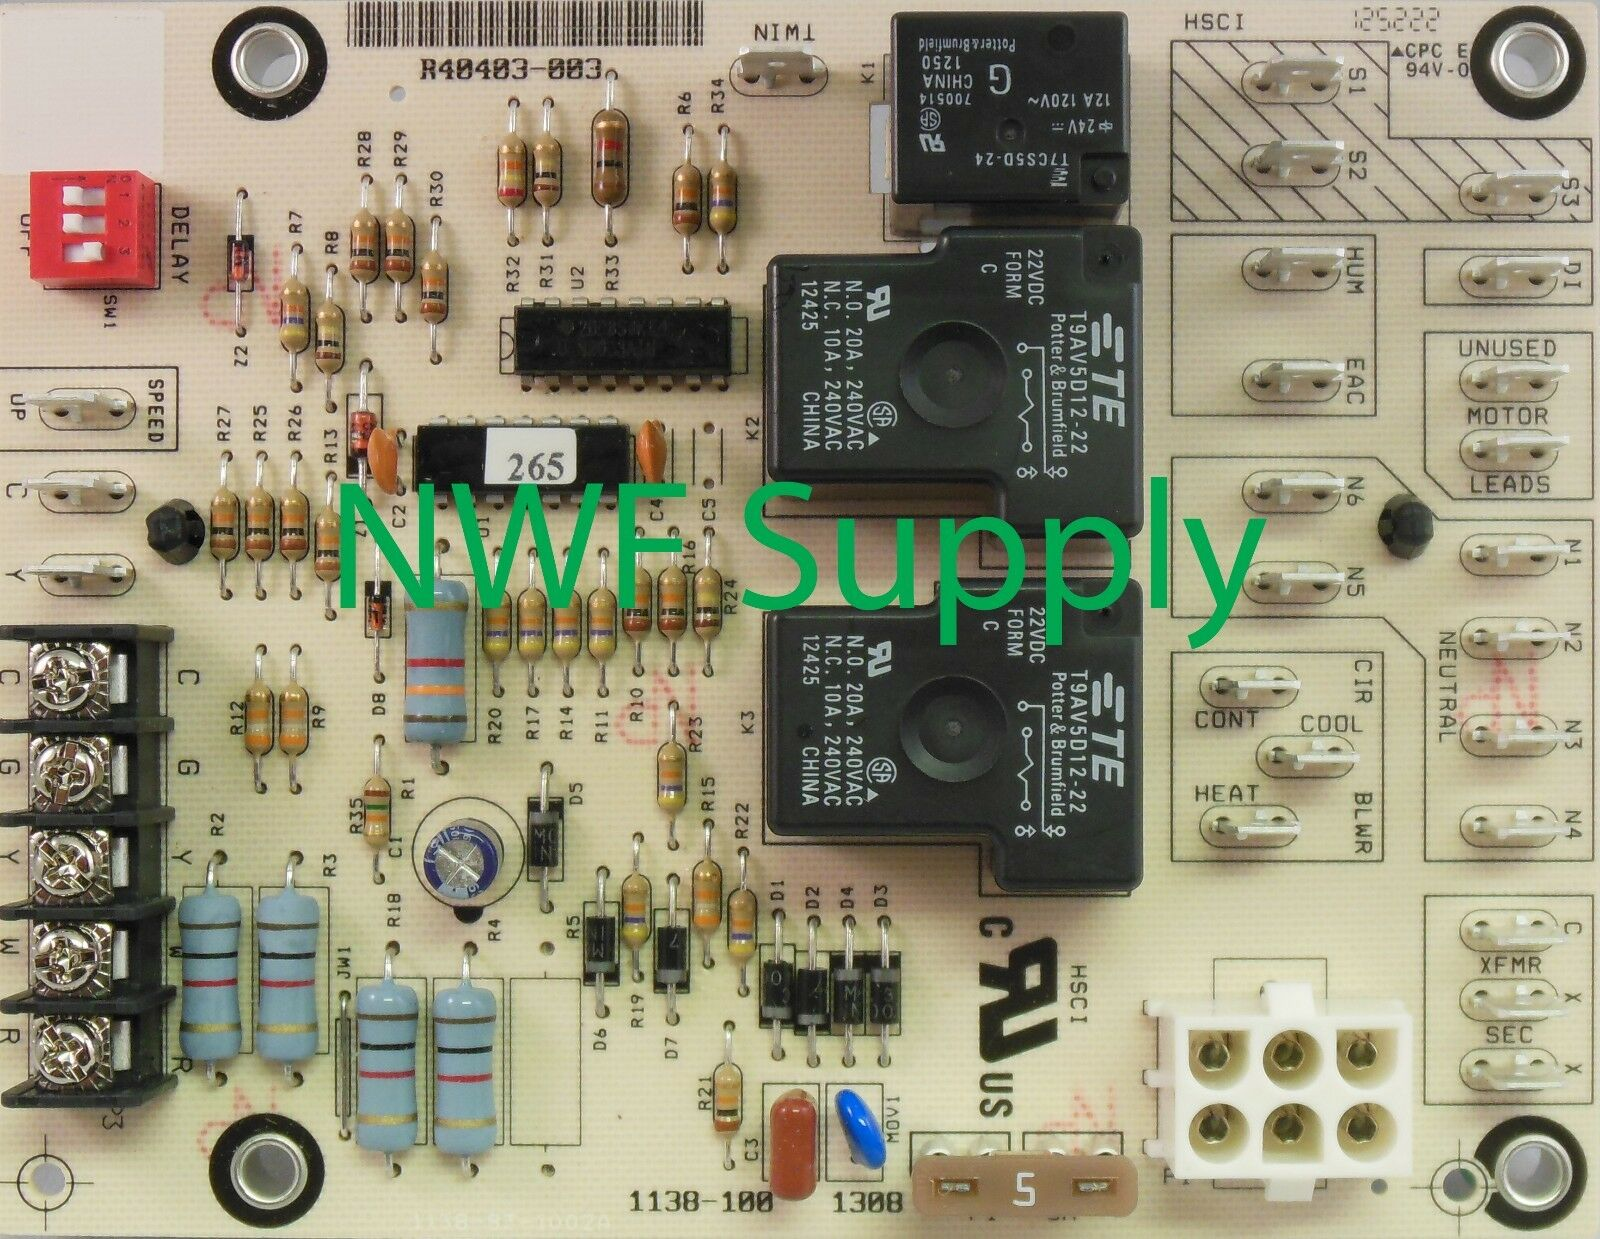 Honeywell Fan Control Furnace Circuit Board St9120c4008 9500 Honeywell L4064b 1 Of 1only 2 Available